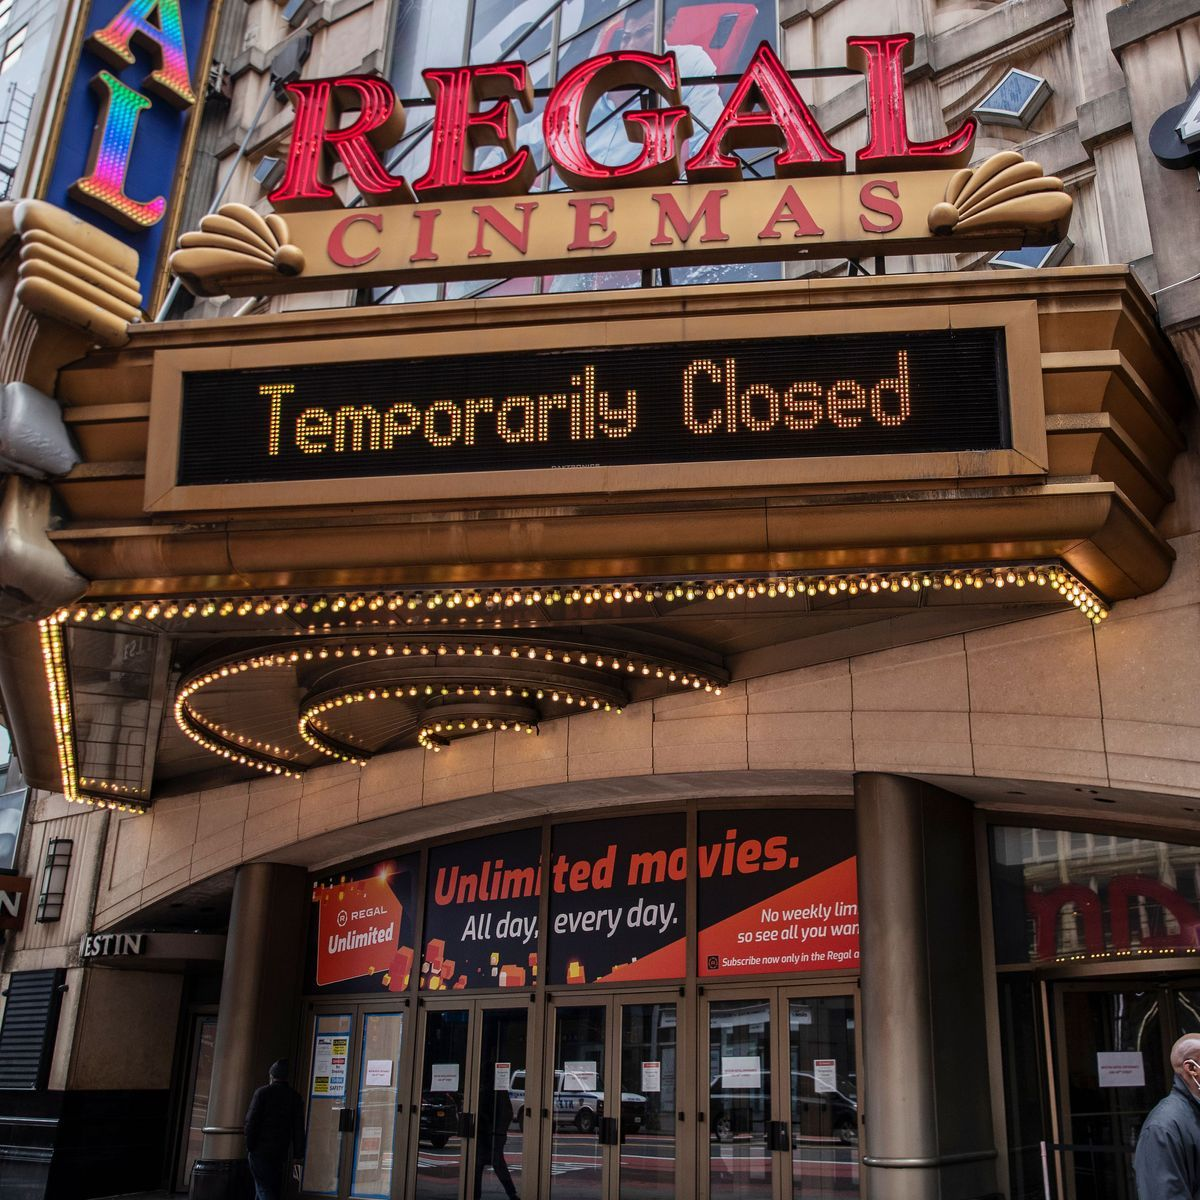 Regal Cinemas is one of the biggest theater chains around, trailing just behind AMC. What's this movie theaters plan going forward?